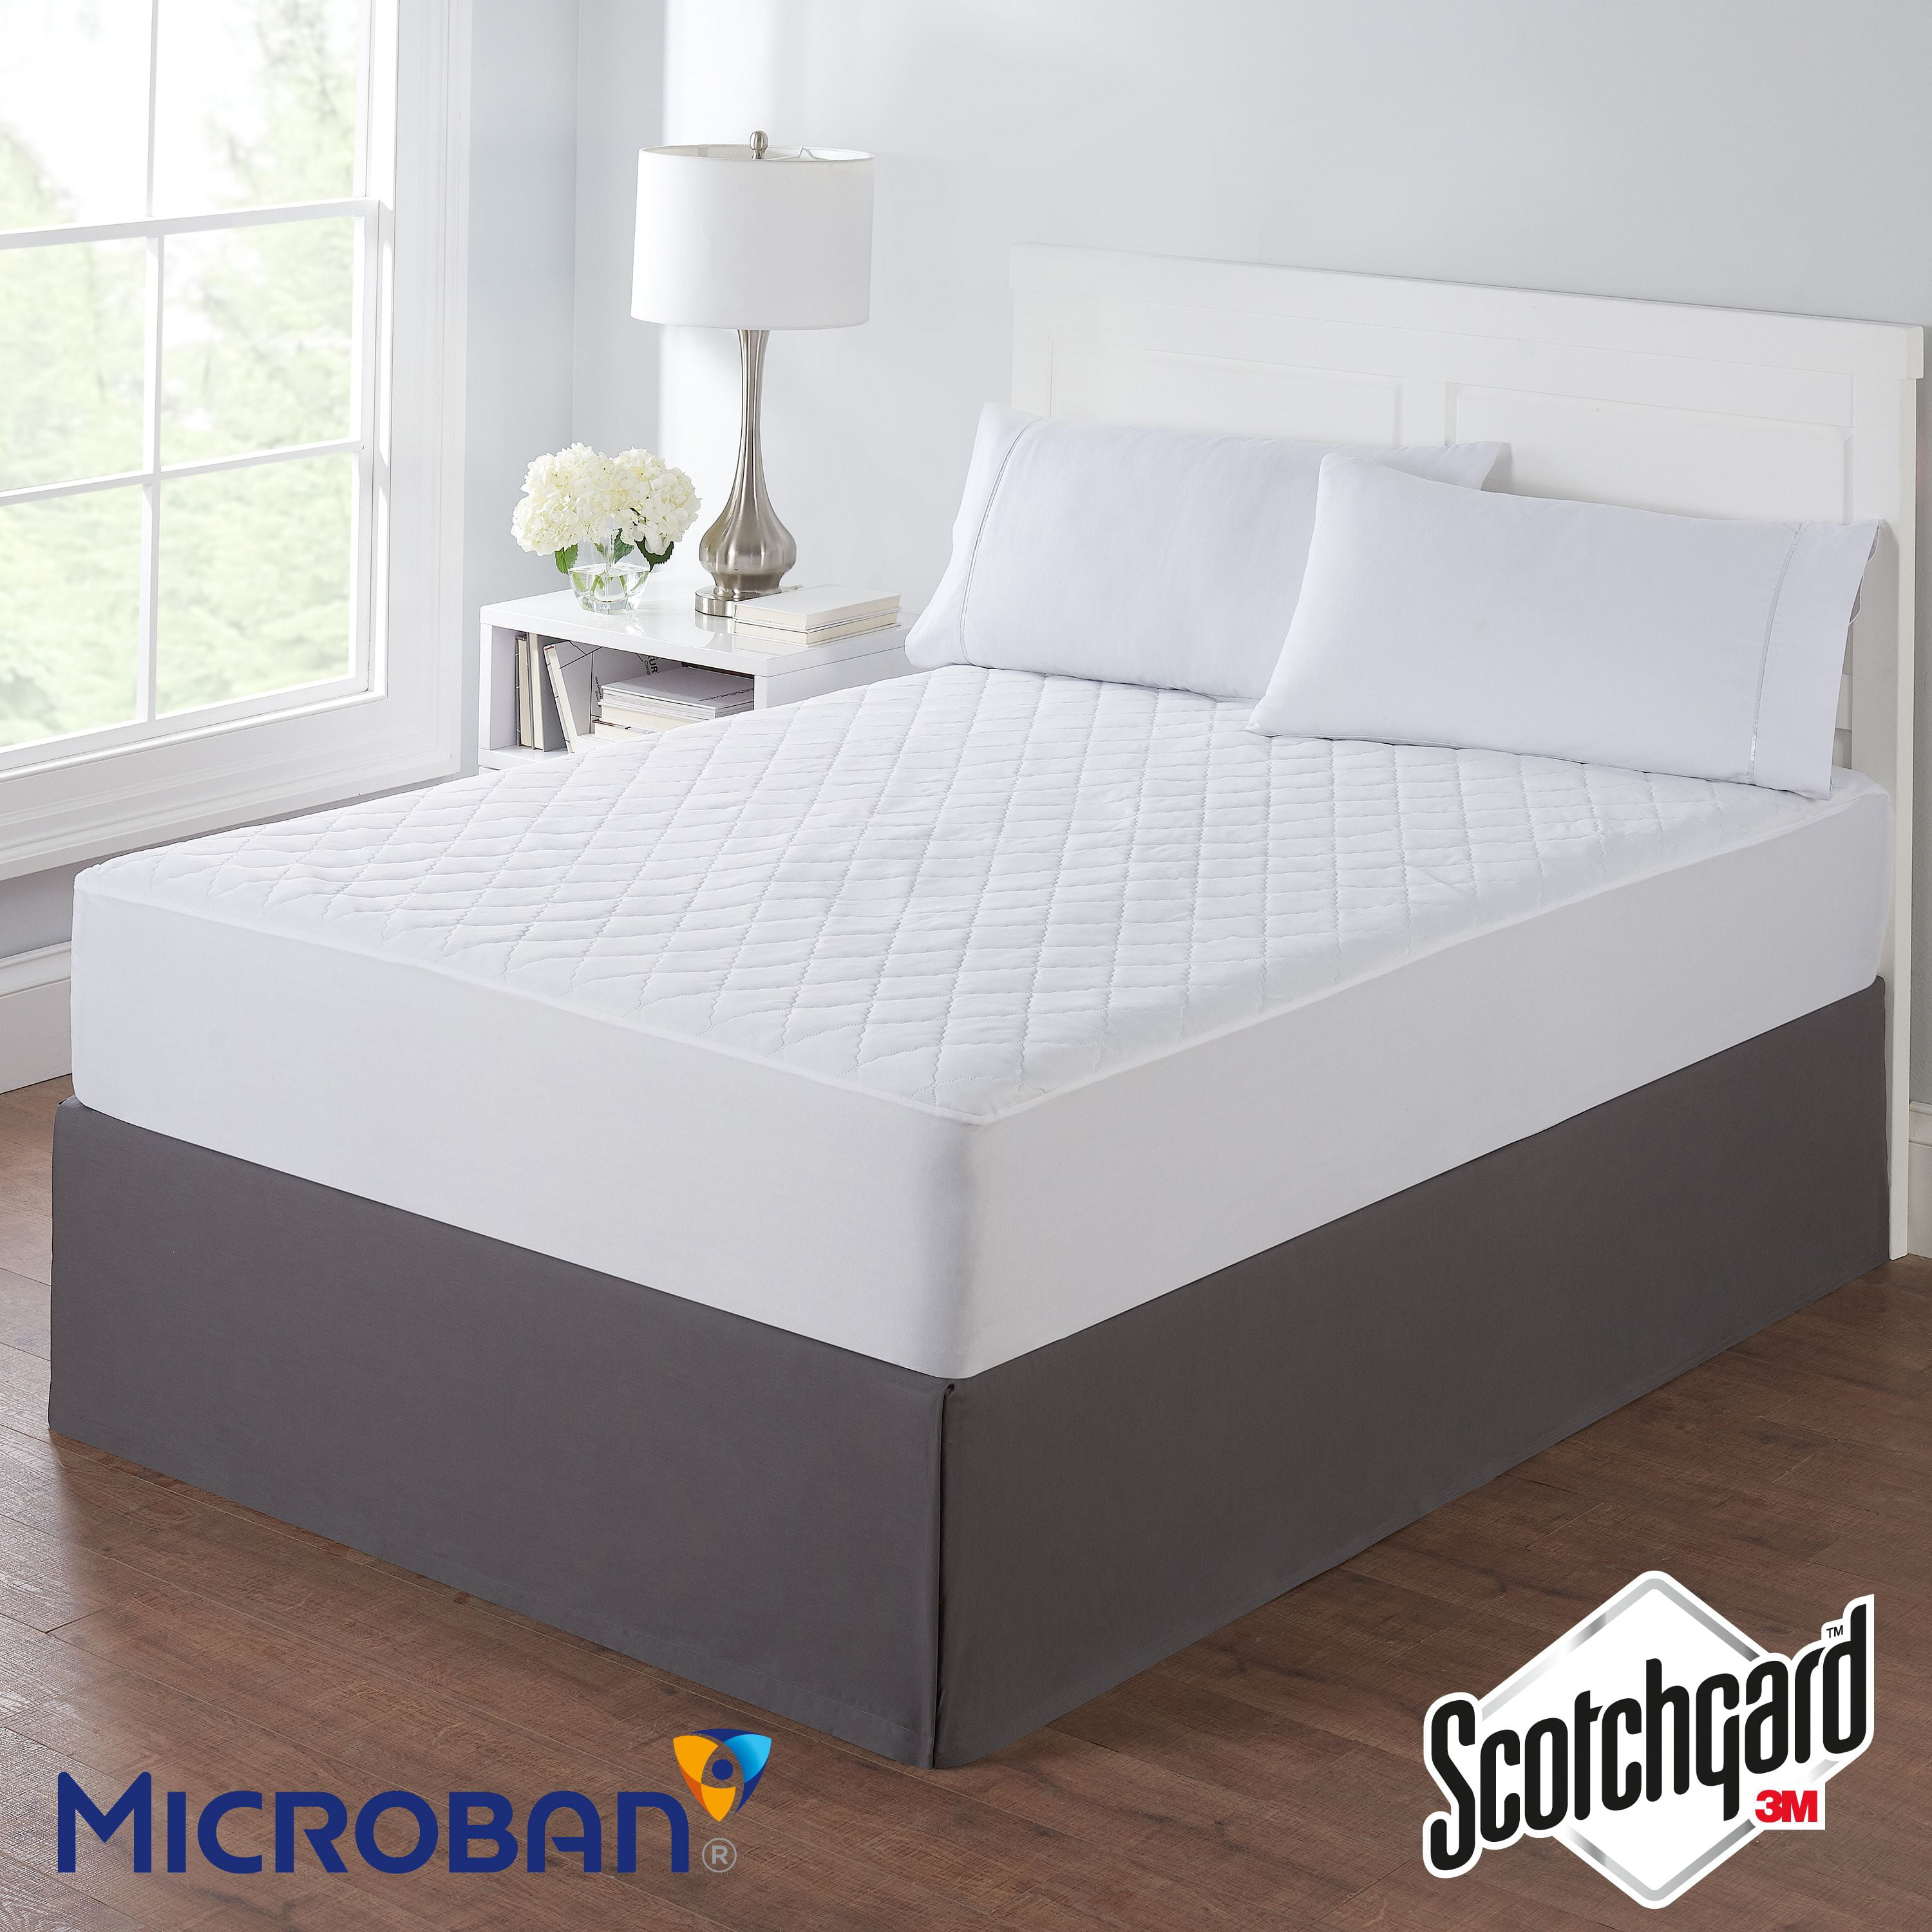 4/'/' SUPERSOFT THICK MICROFIBER MATTRESS TOPPER//MATRESS PROTECTER WITH ALL SIZE